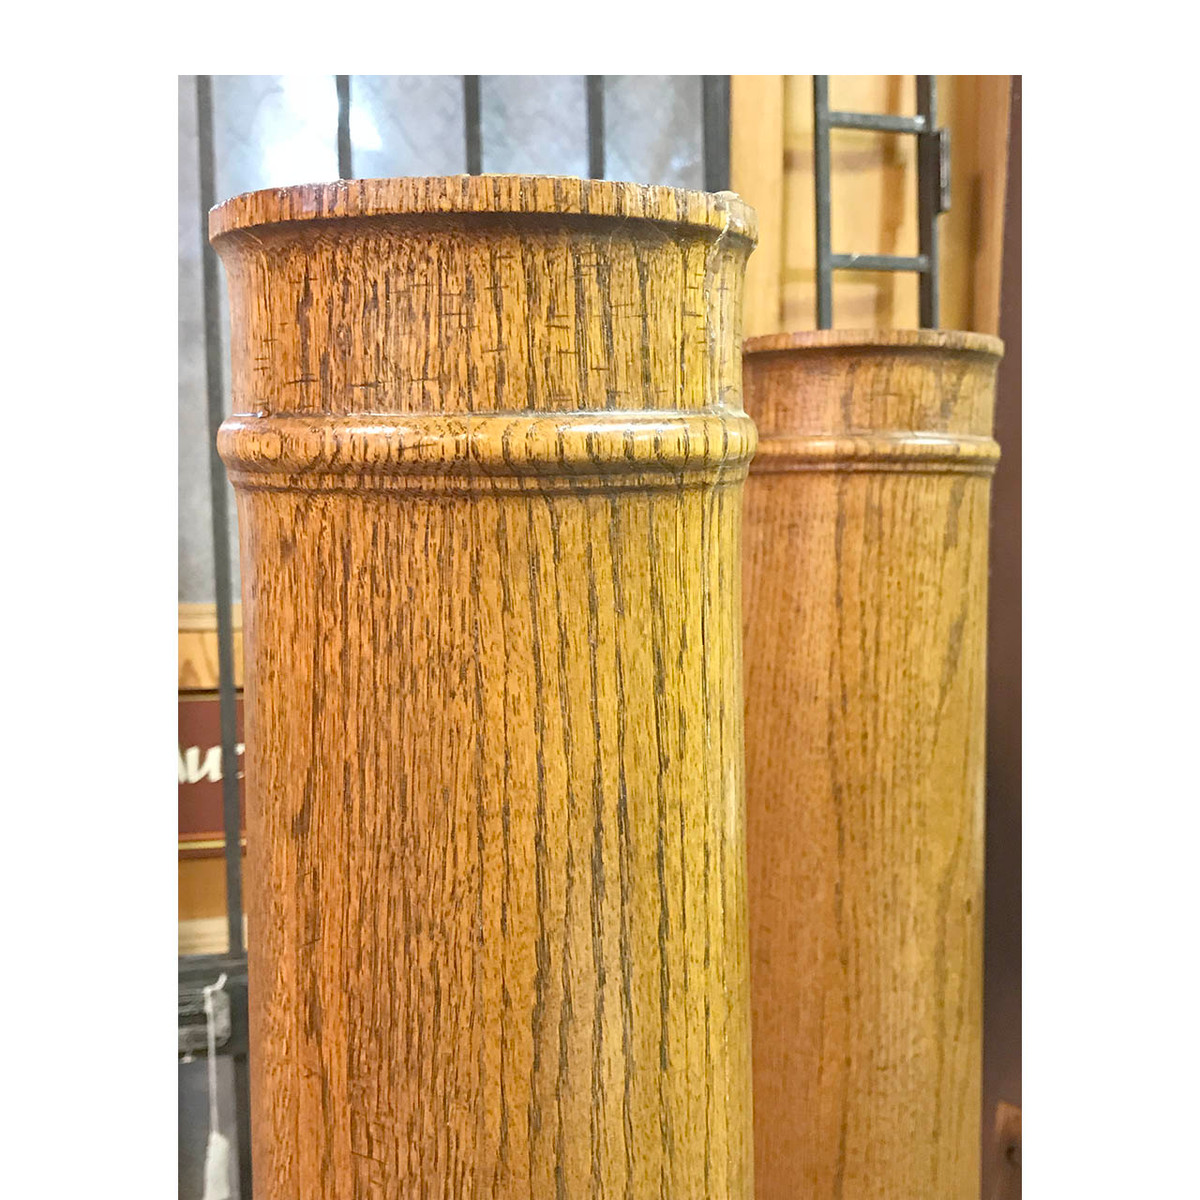 S17062 - Pair of Antique Columns